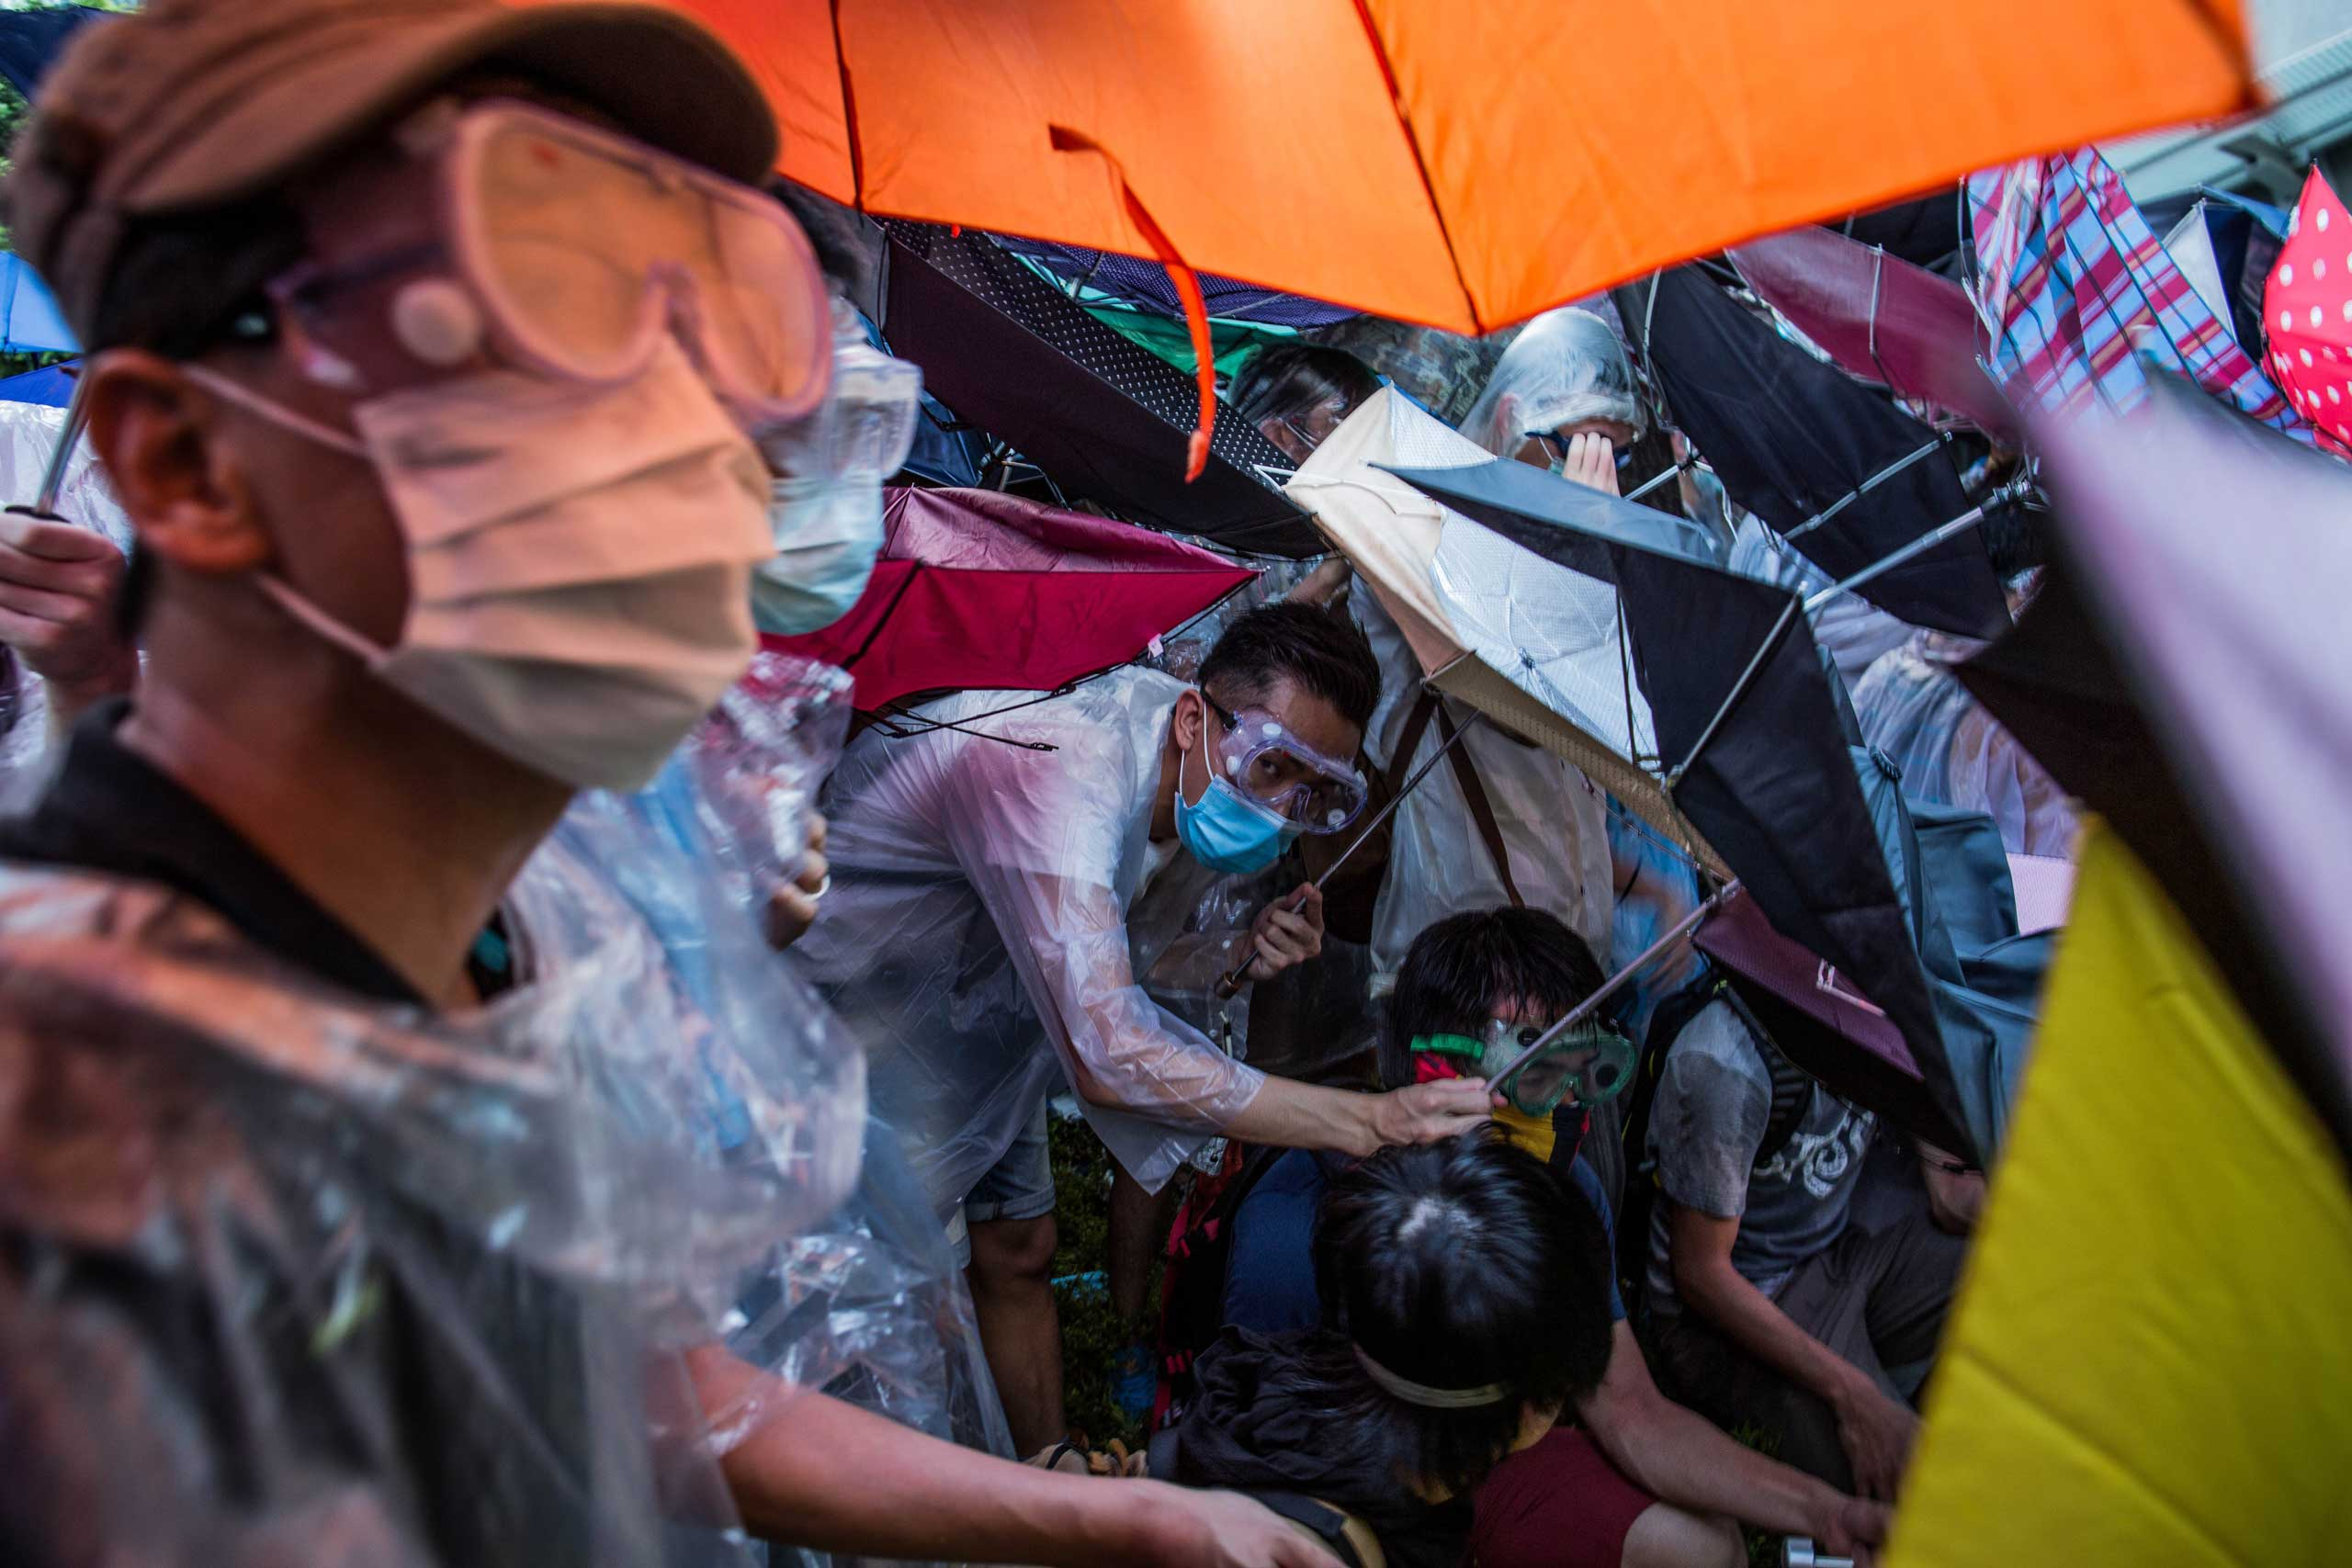 Sept. 28, 2014. More than 50,000 demonstrators closed down the main thoroughfare connecting Central and Admiralty in Honk Kong, China. Protesters created a force field of umbrellas to protect them from pepper spray.